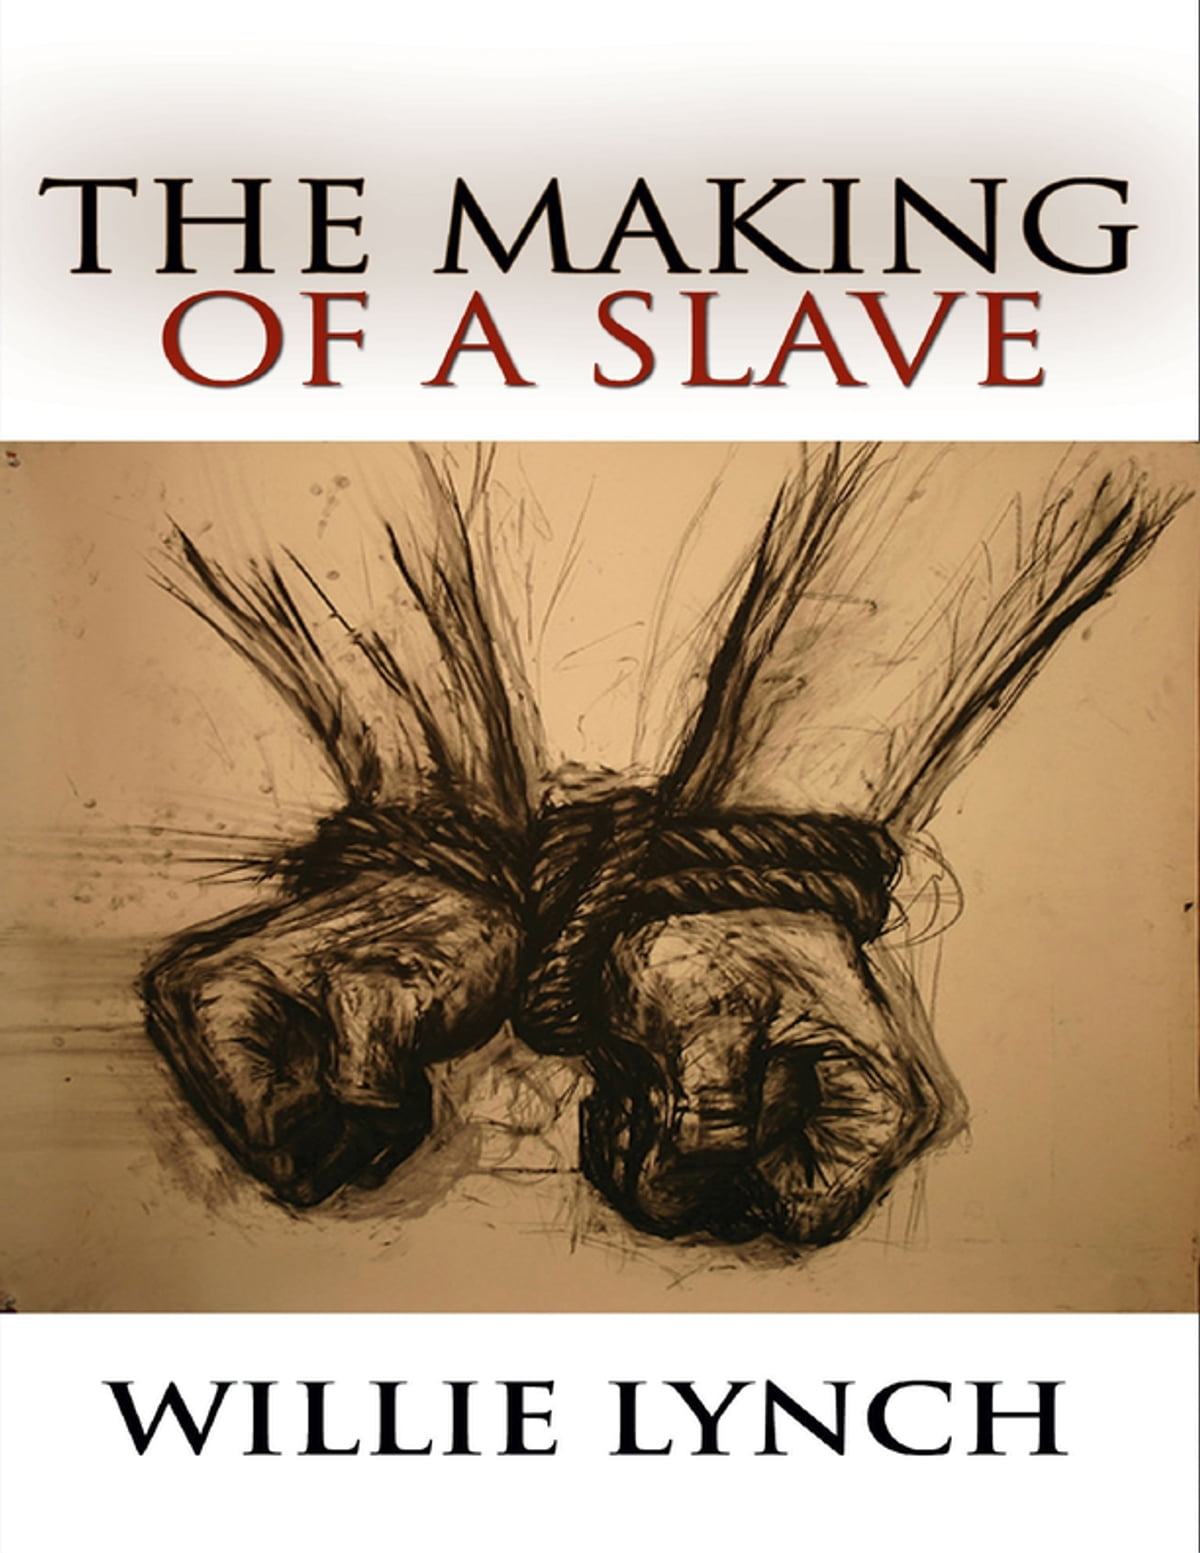 willie lynch the making of a slave pdf